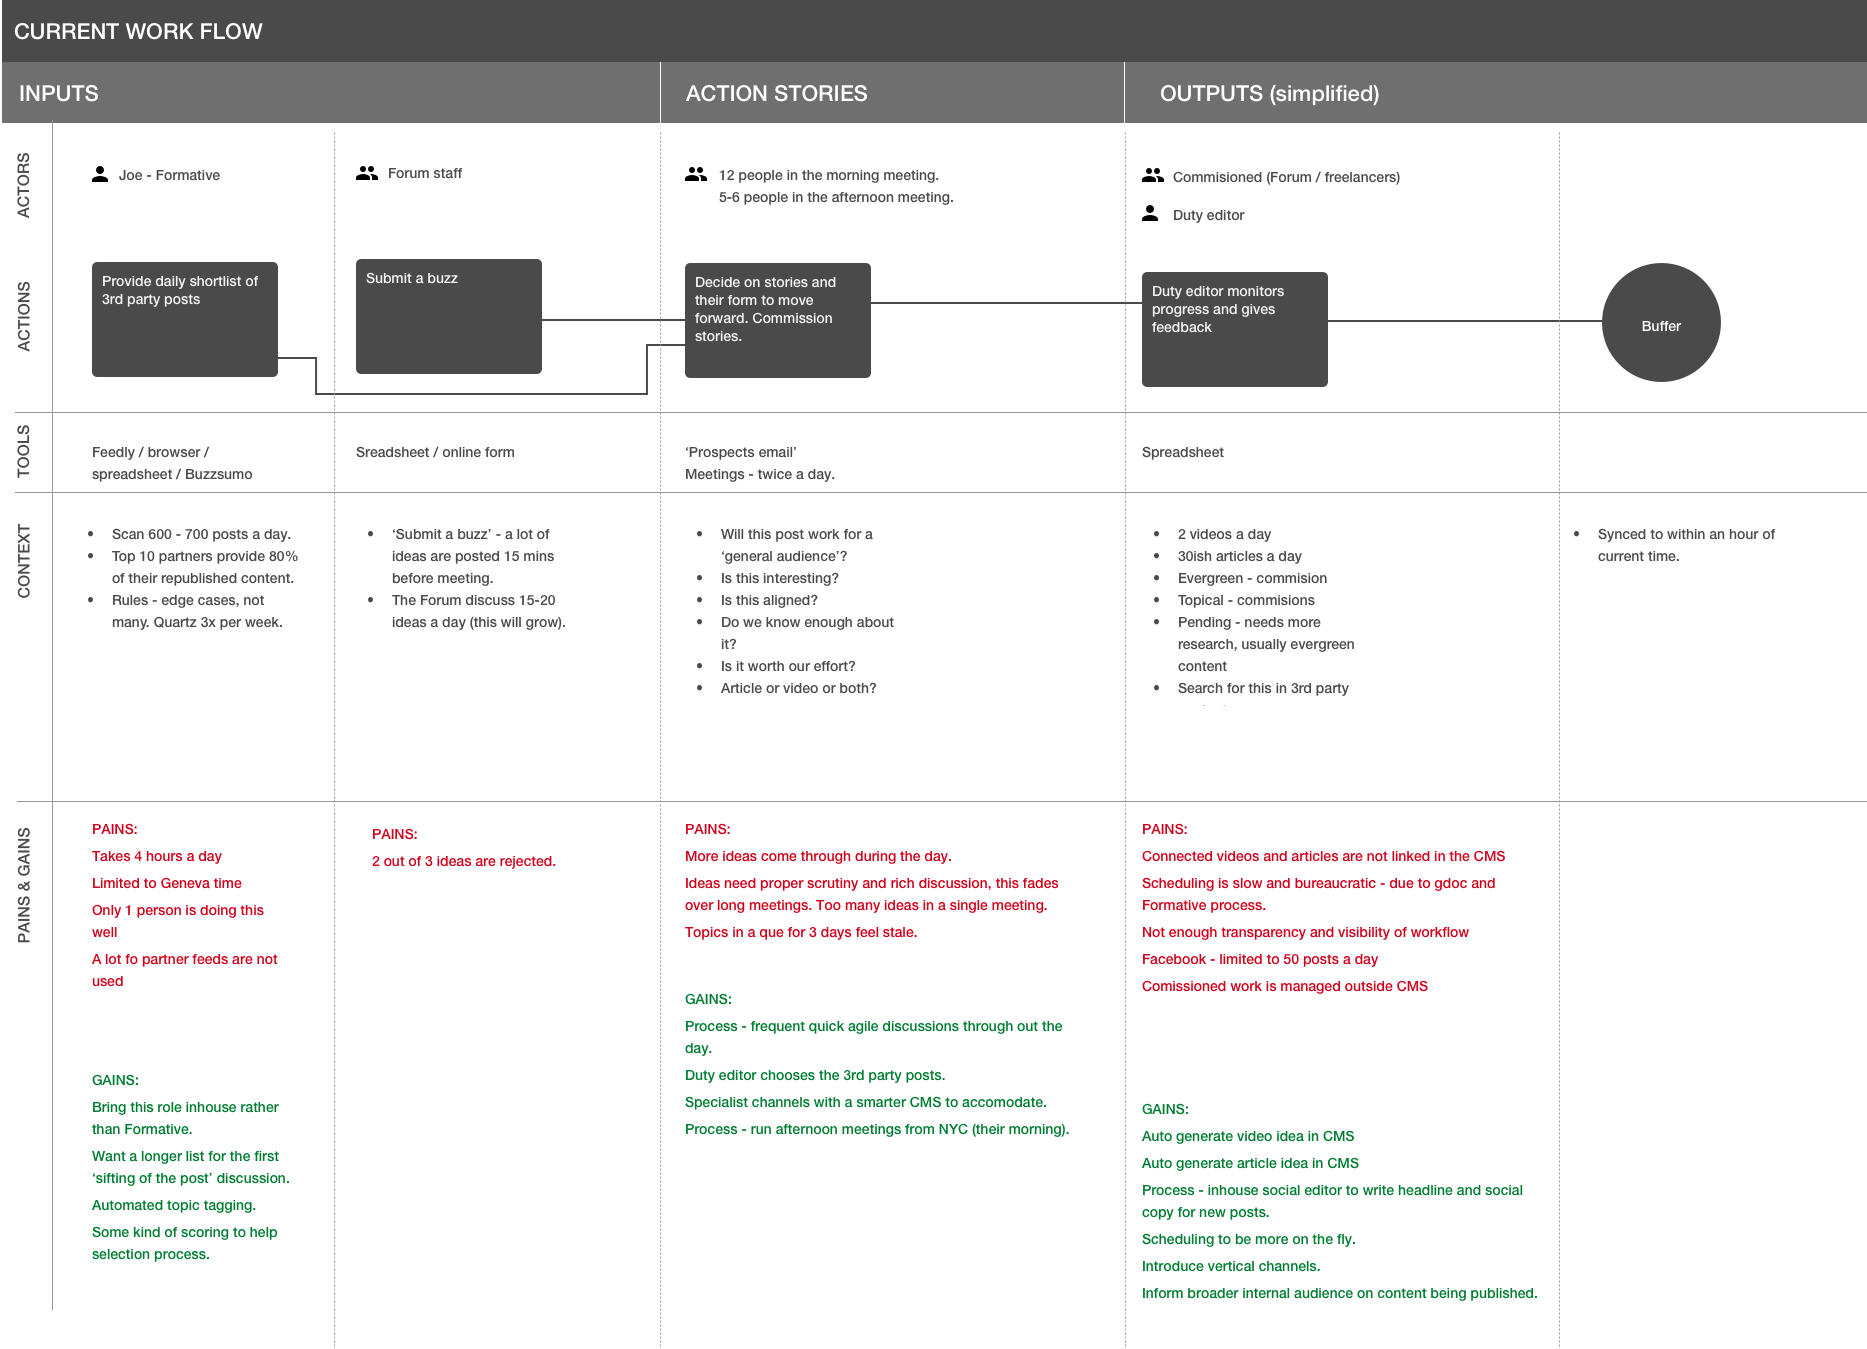 Workflow mappings - Showing the details: actors, actions, tools, context, pains and gains.